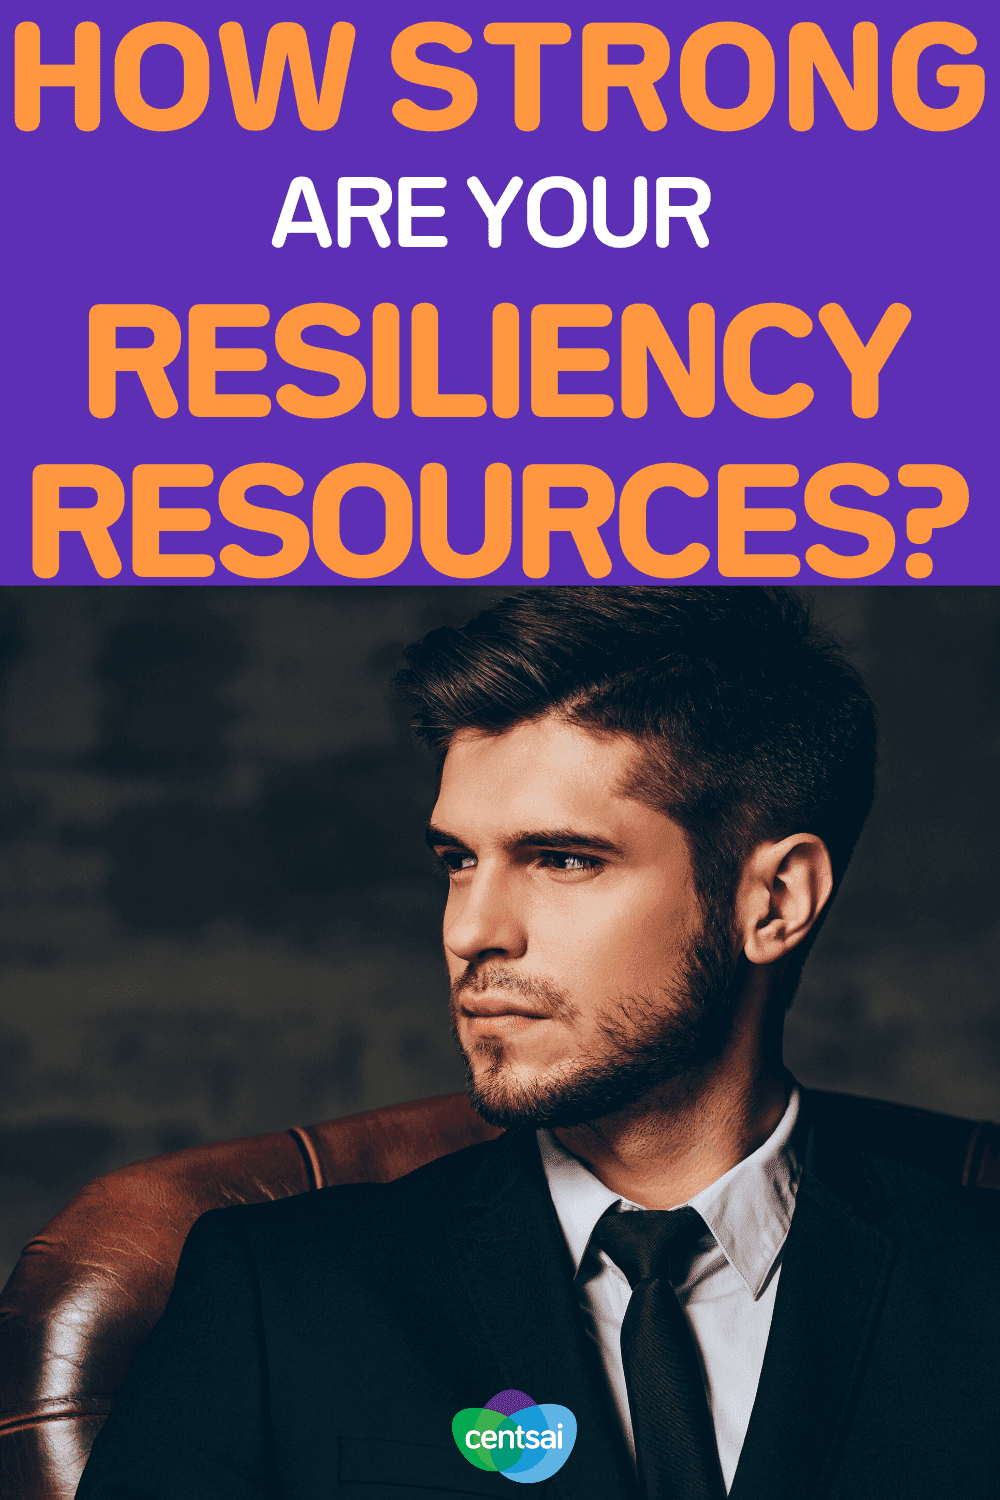 How Strong Are Your Resiliency Resources